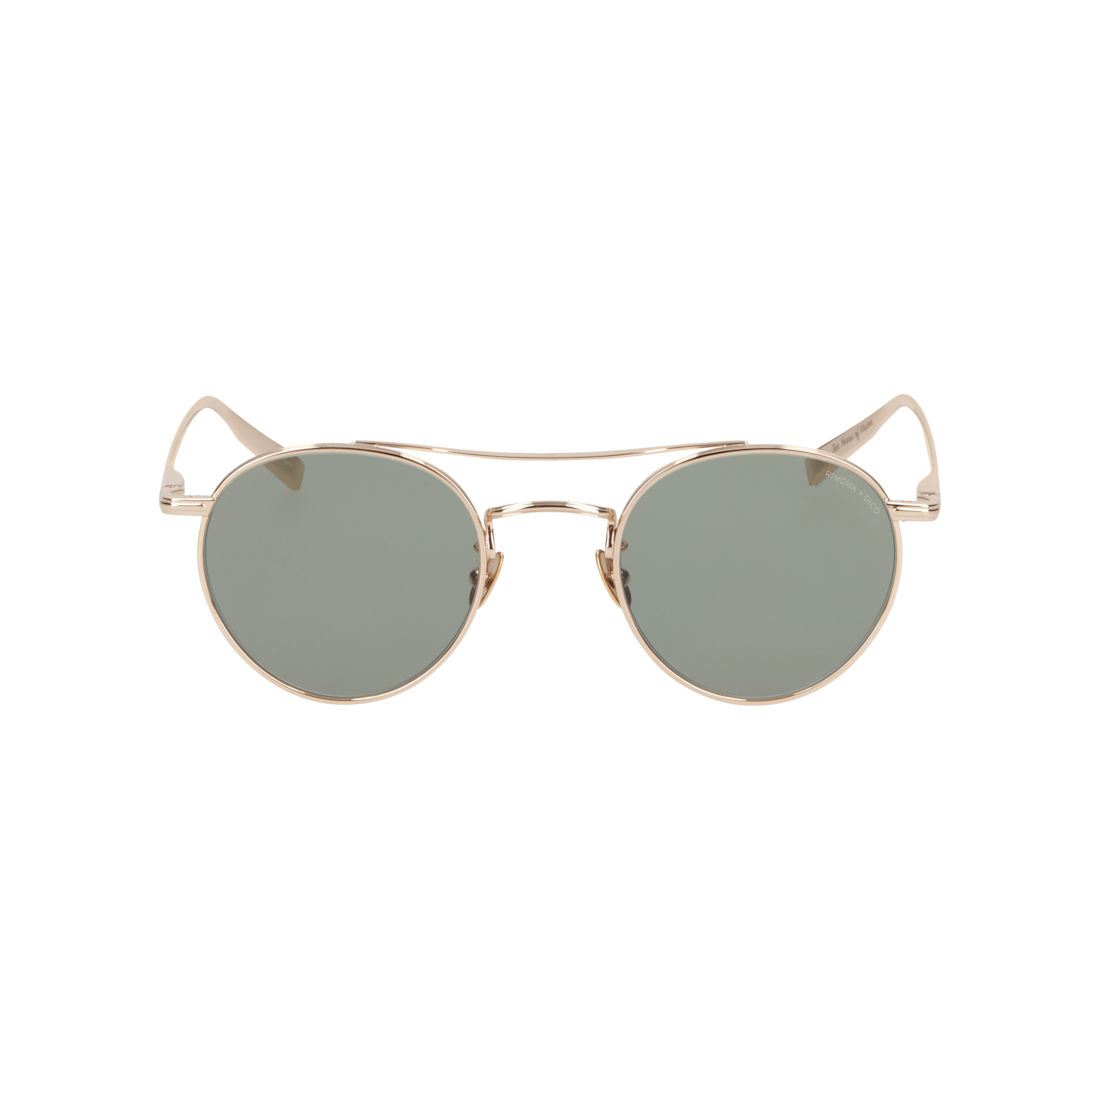 Sunglasses in Gold Metal